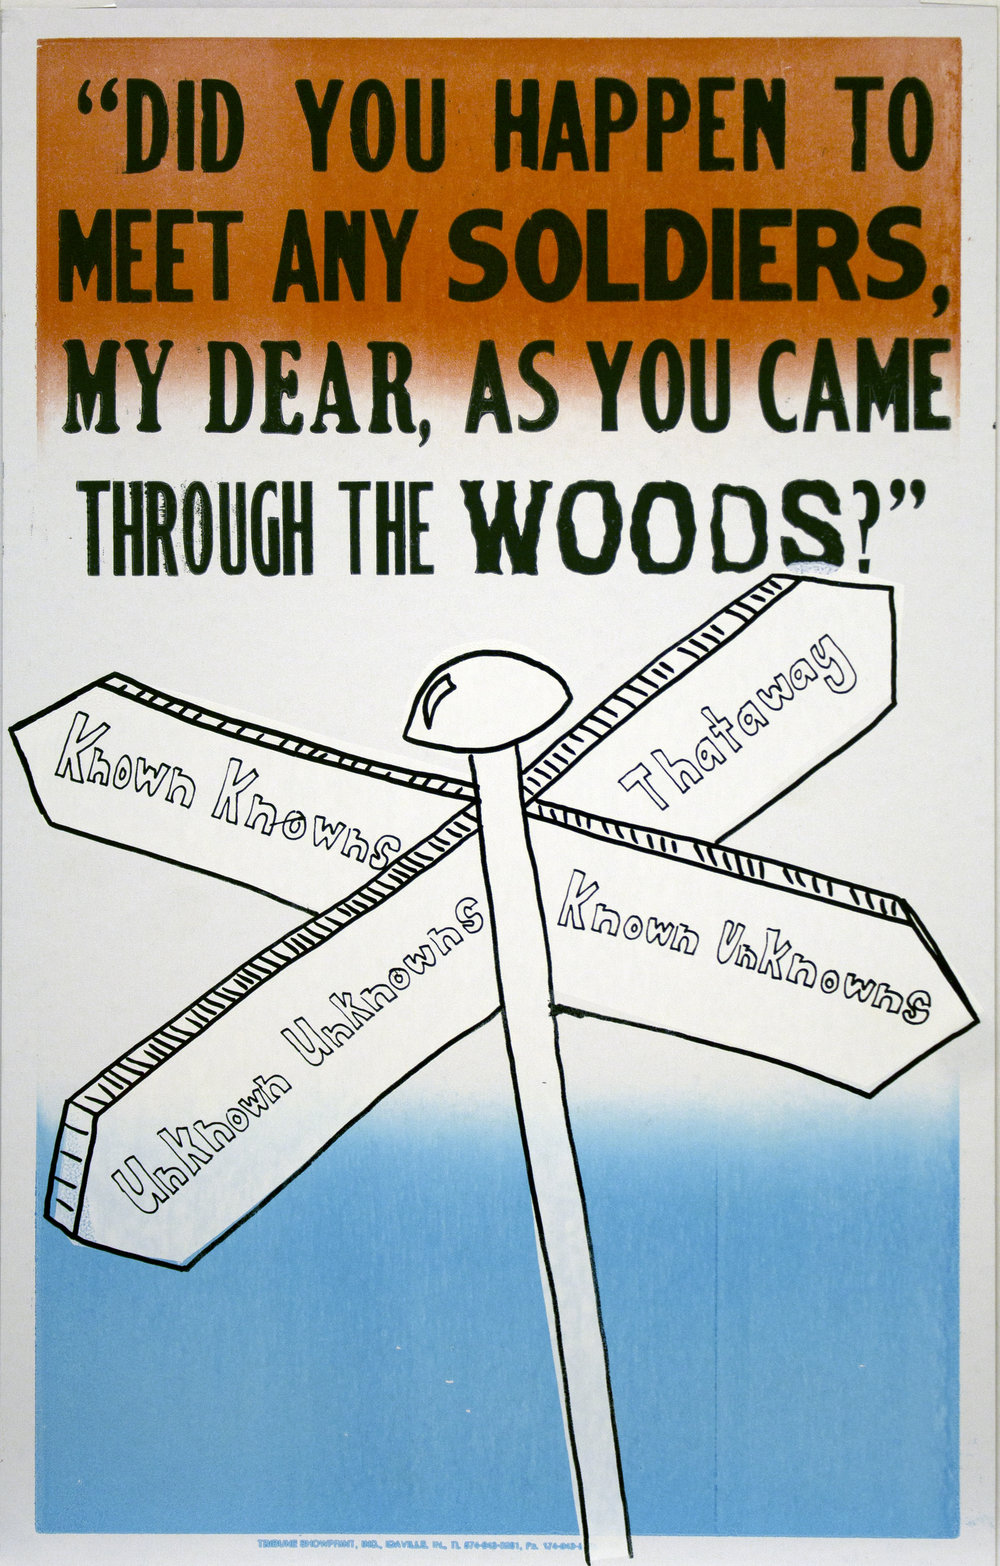 "Christopher Michlig and Jan Tumlir,  Rumsfeld's Address (""DID YOU HAPPEN TO MEET ANY SOLDIERS, MY DEAR, AS YOU CAME THROUGH THE WOODS?"") , 2017. Silkscreen and letterpress on poster board, 14 x 22 inches"